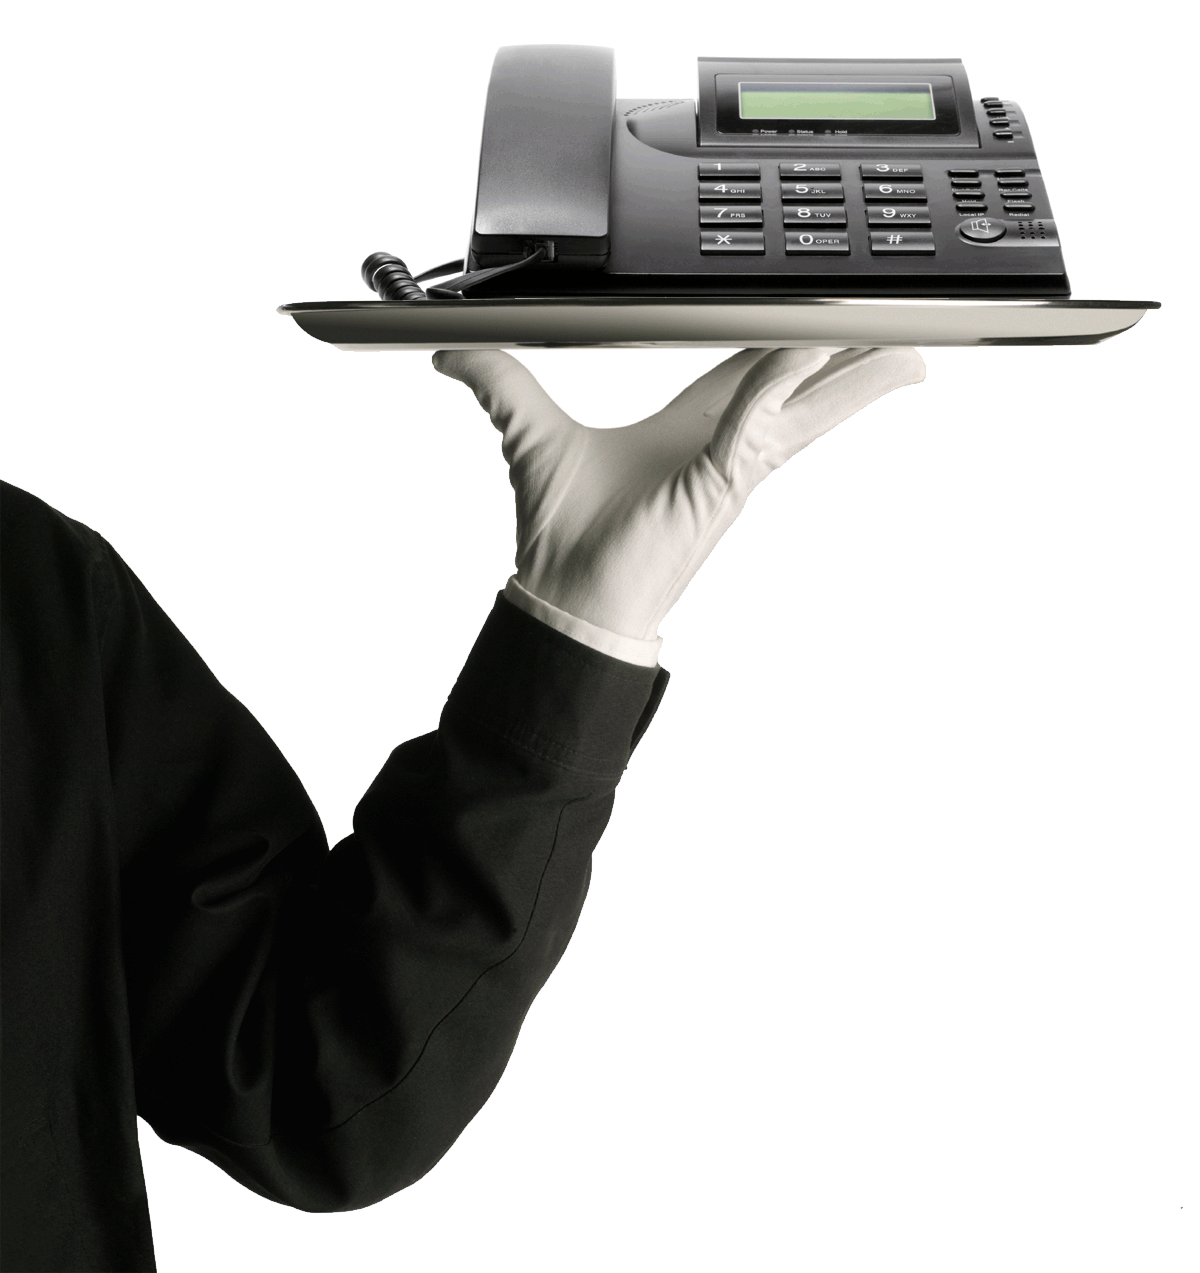 What's the Secret to Crystal-Clear VoIP Calls?